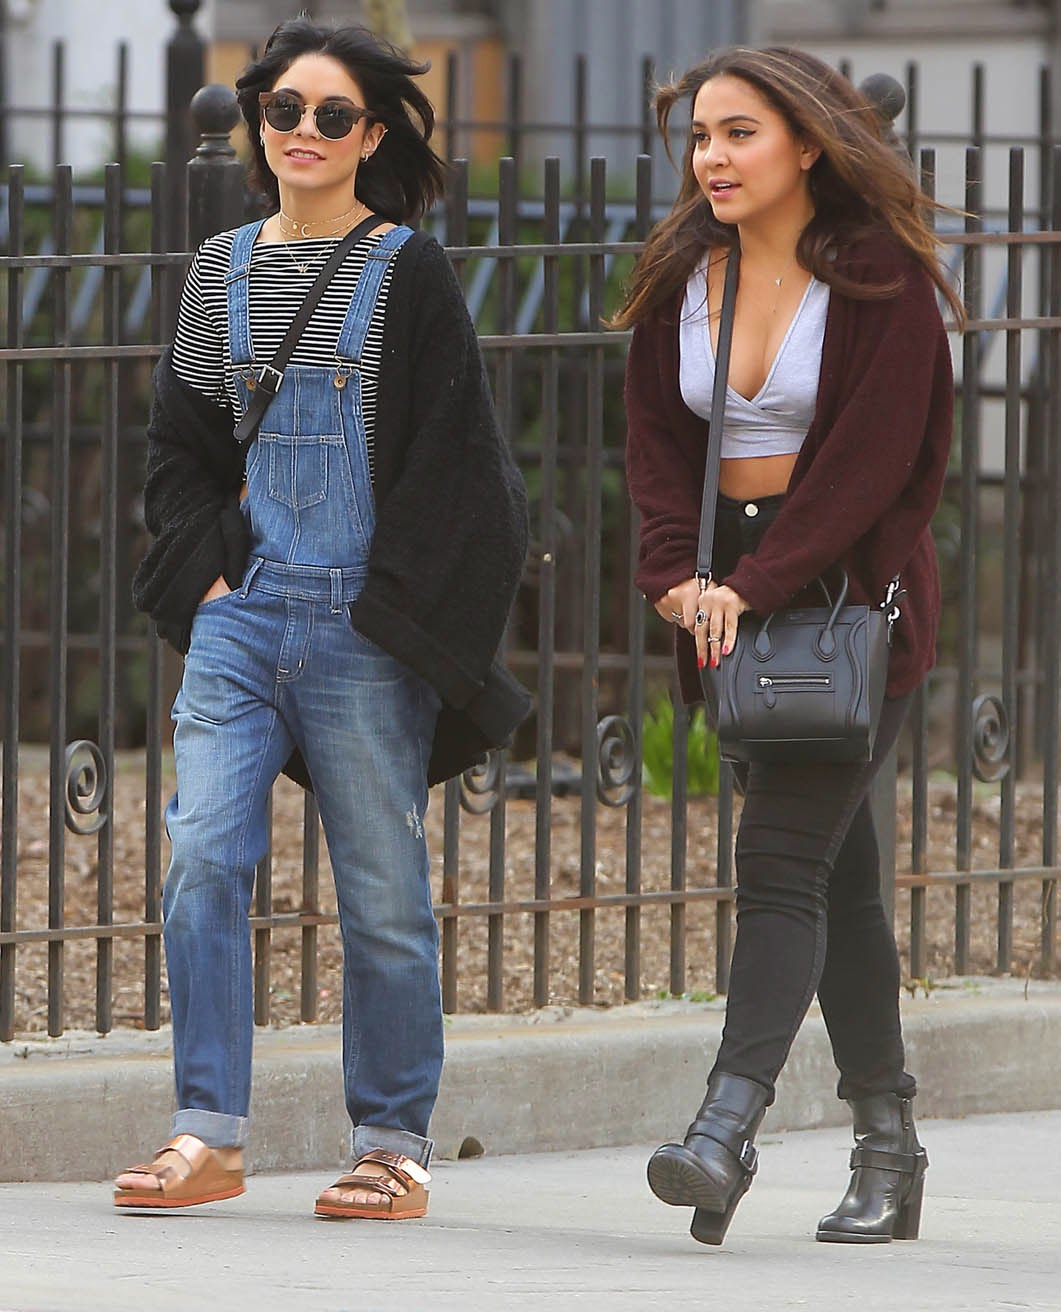 Vanessa Hudgens and Her Sister Stella Hudgens Are Not So Cute Anymore